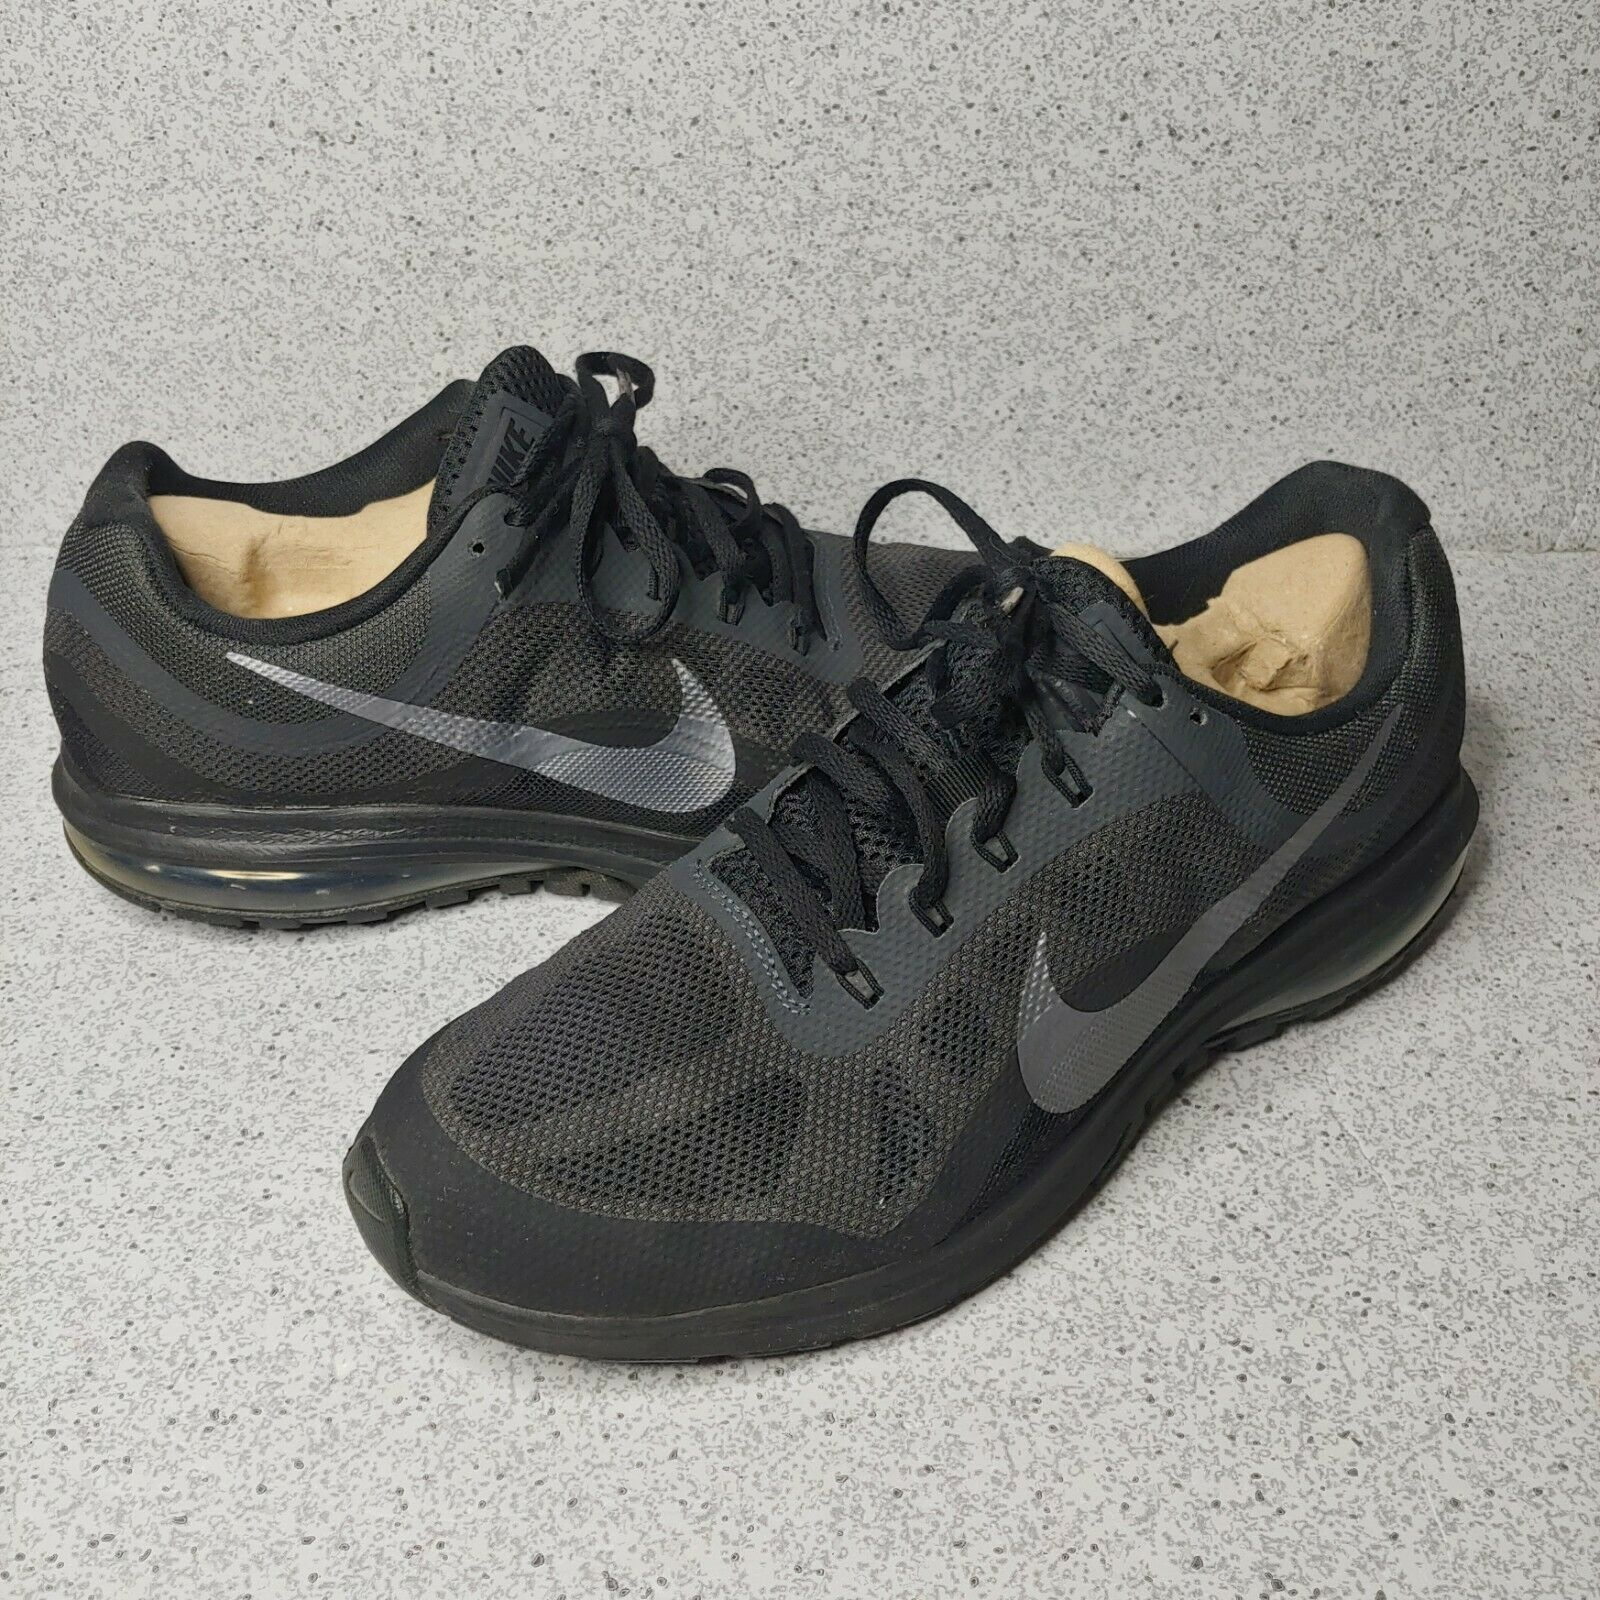 Size 11.5 - Nike Air Max Dynasty 2 Anthracite for sale online | eBay